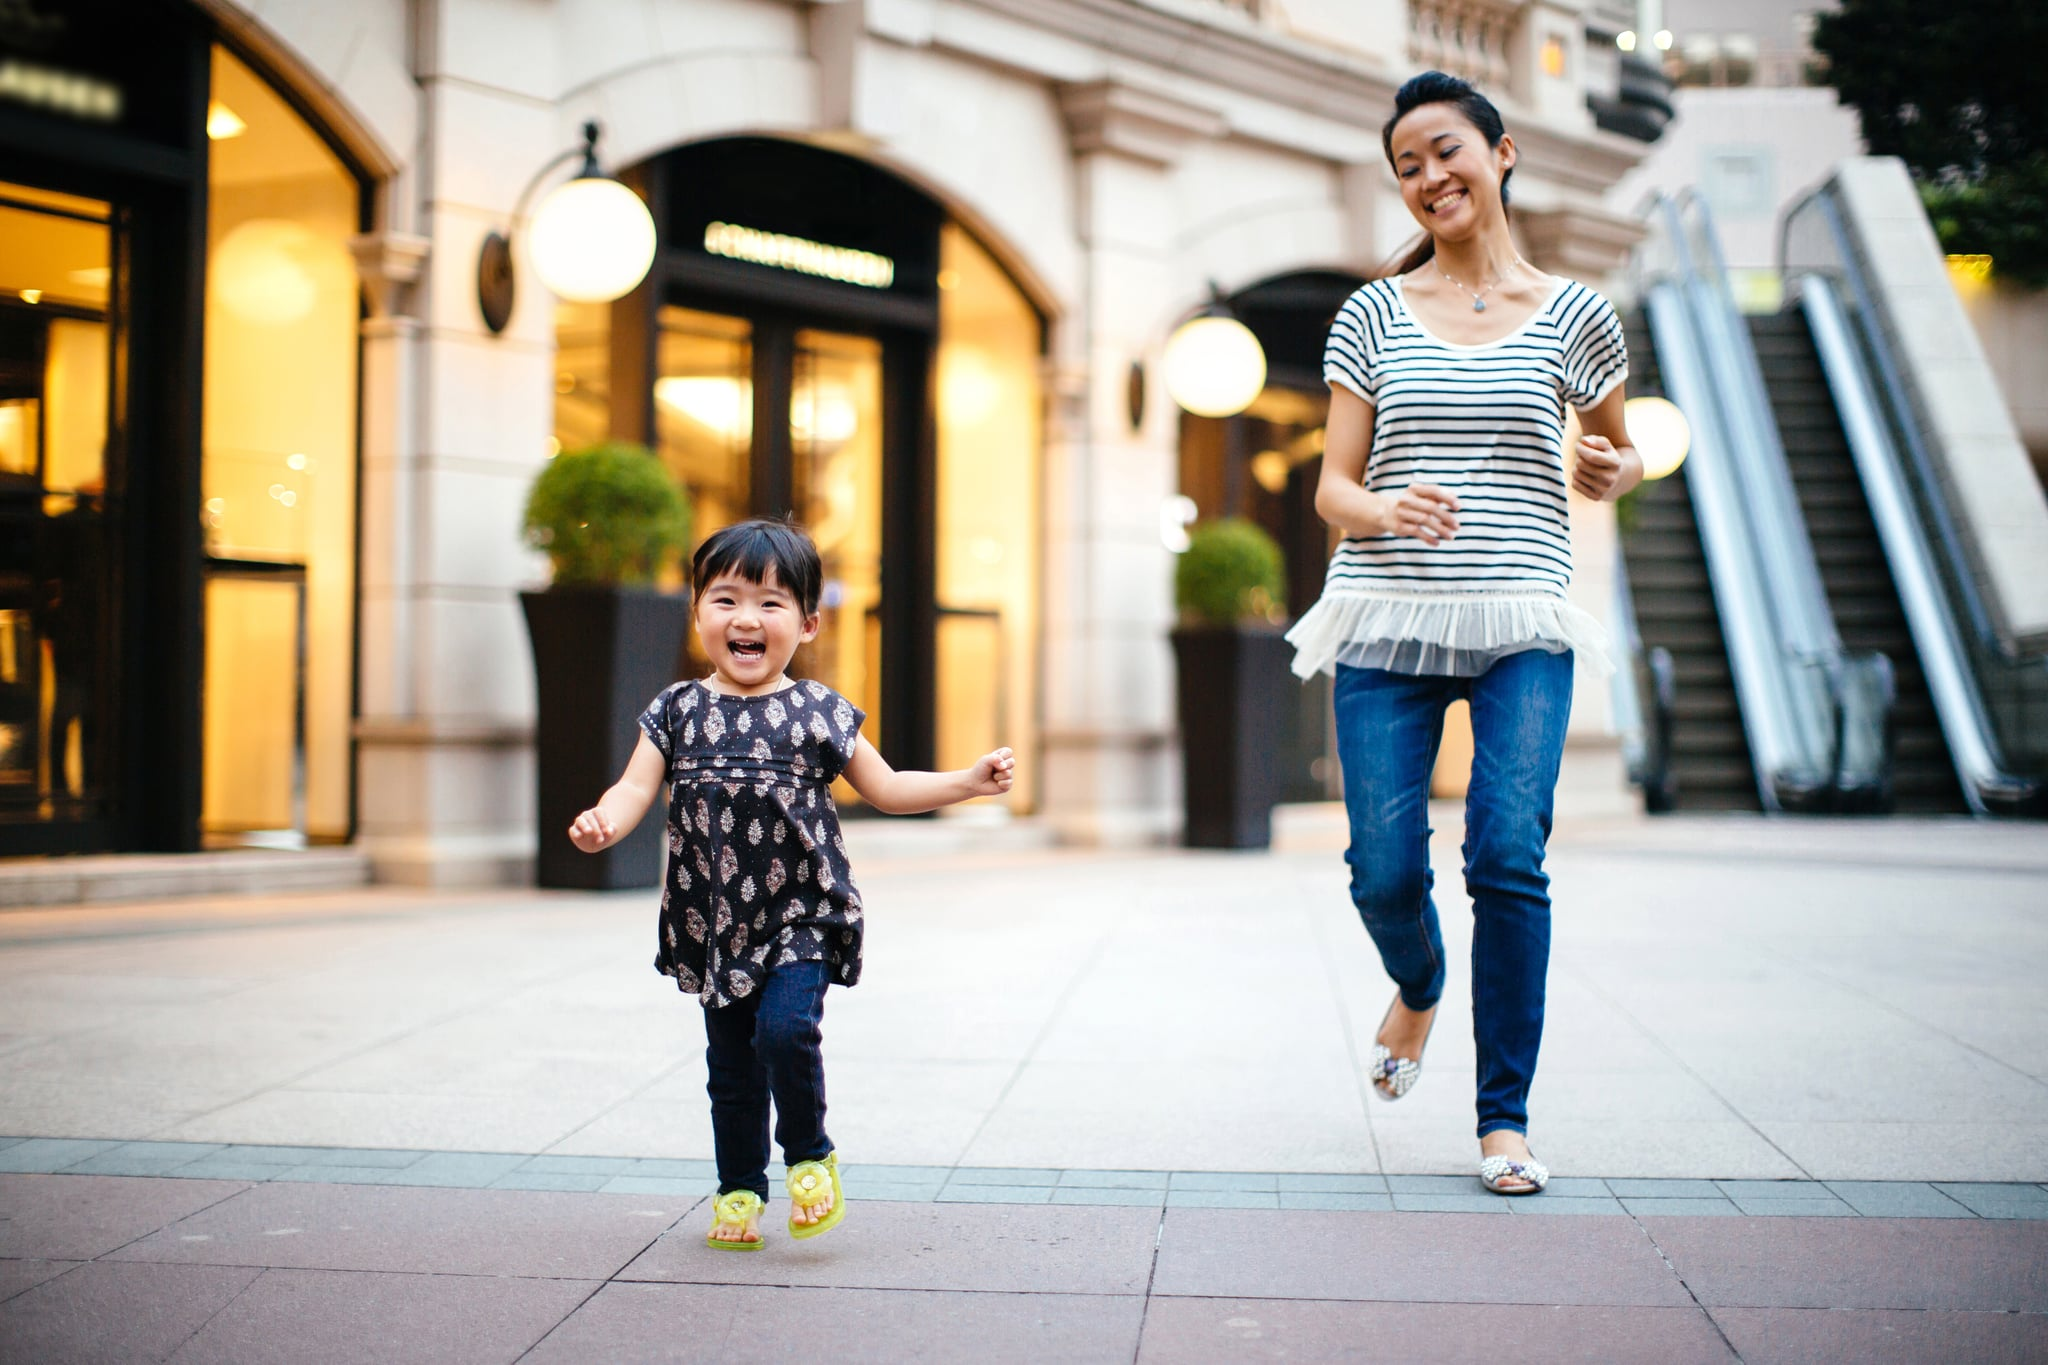 Pretty young mom playing with and chasing after running toddler girl in the square, both smiling joyfully.